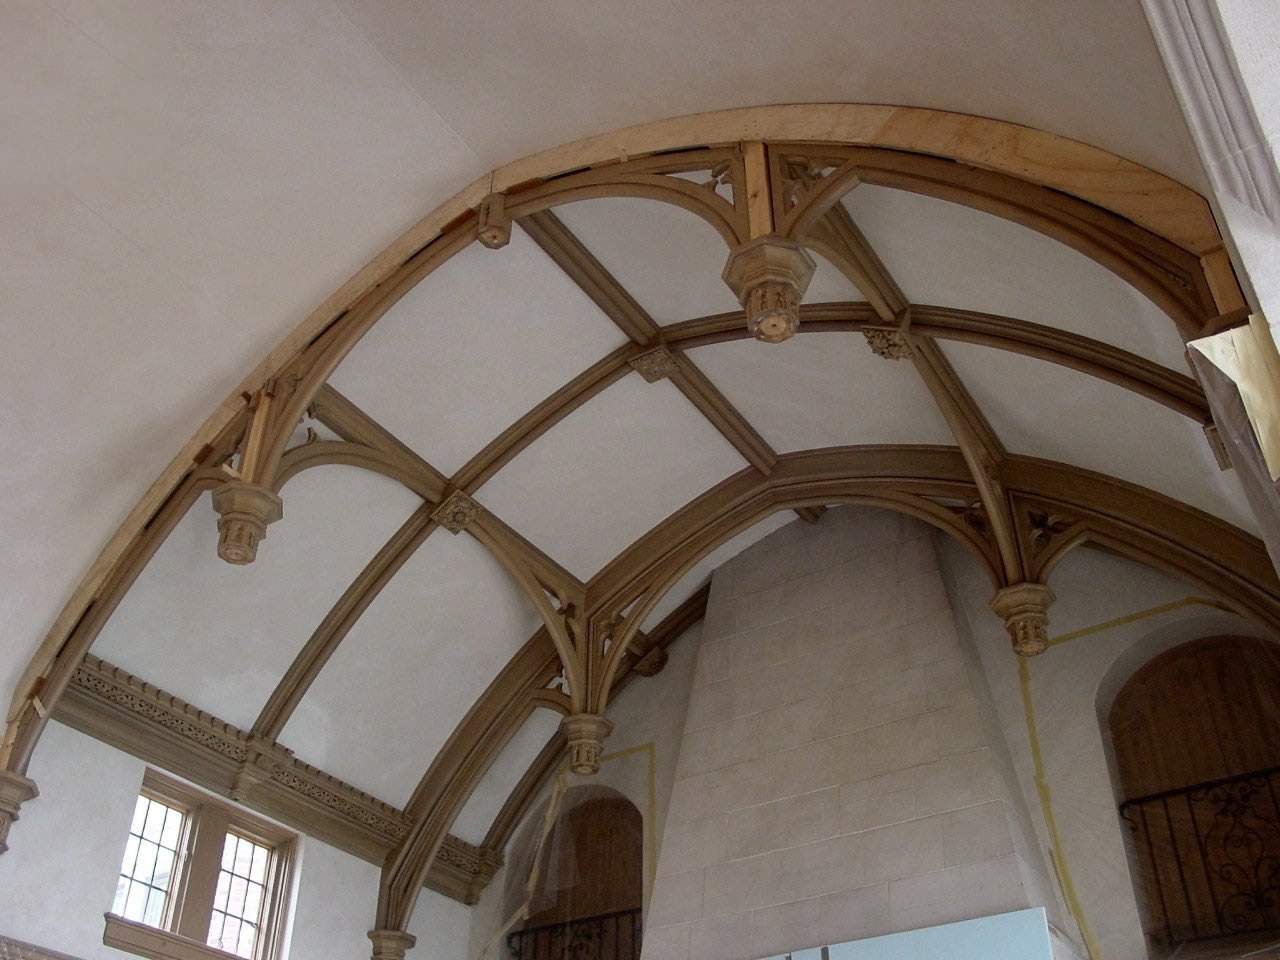 Installation of solid oak trusses for a ceiling in the USA